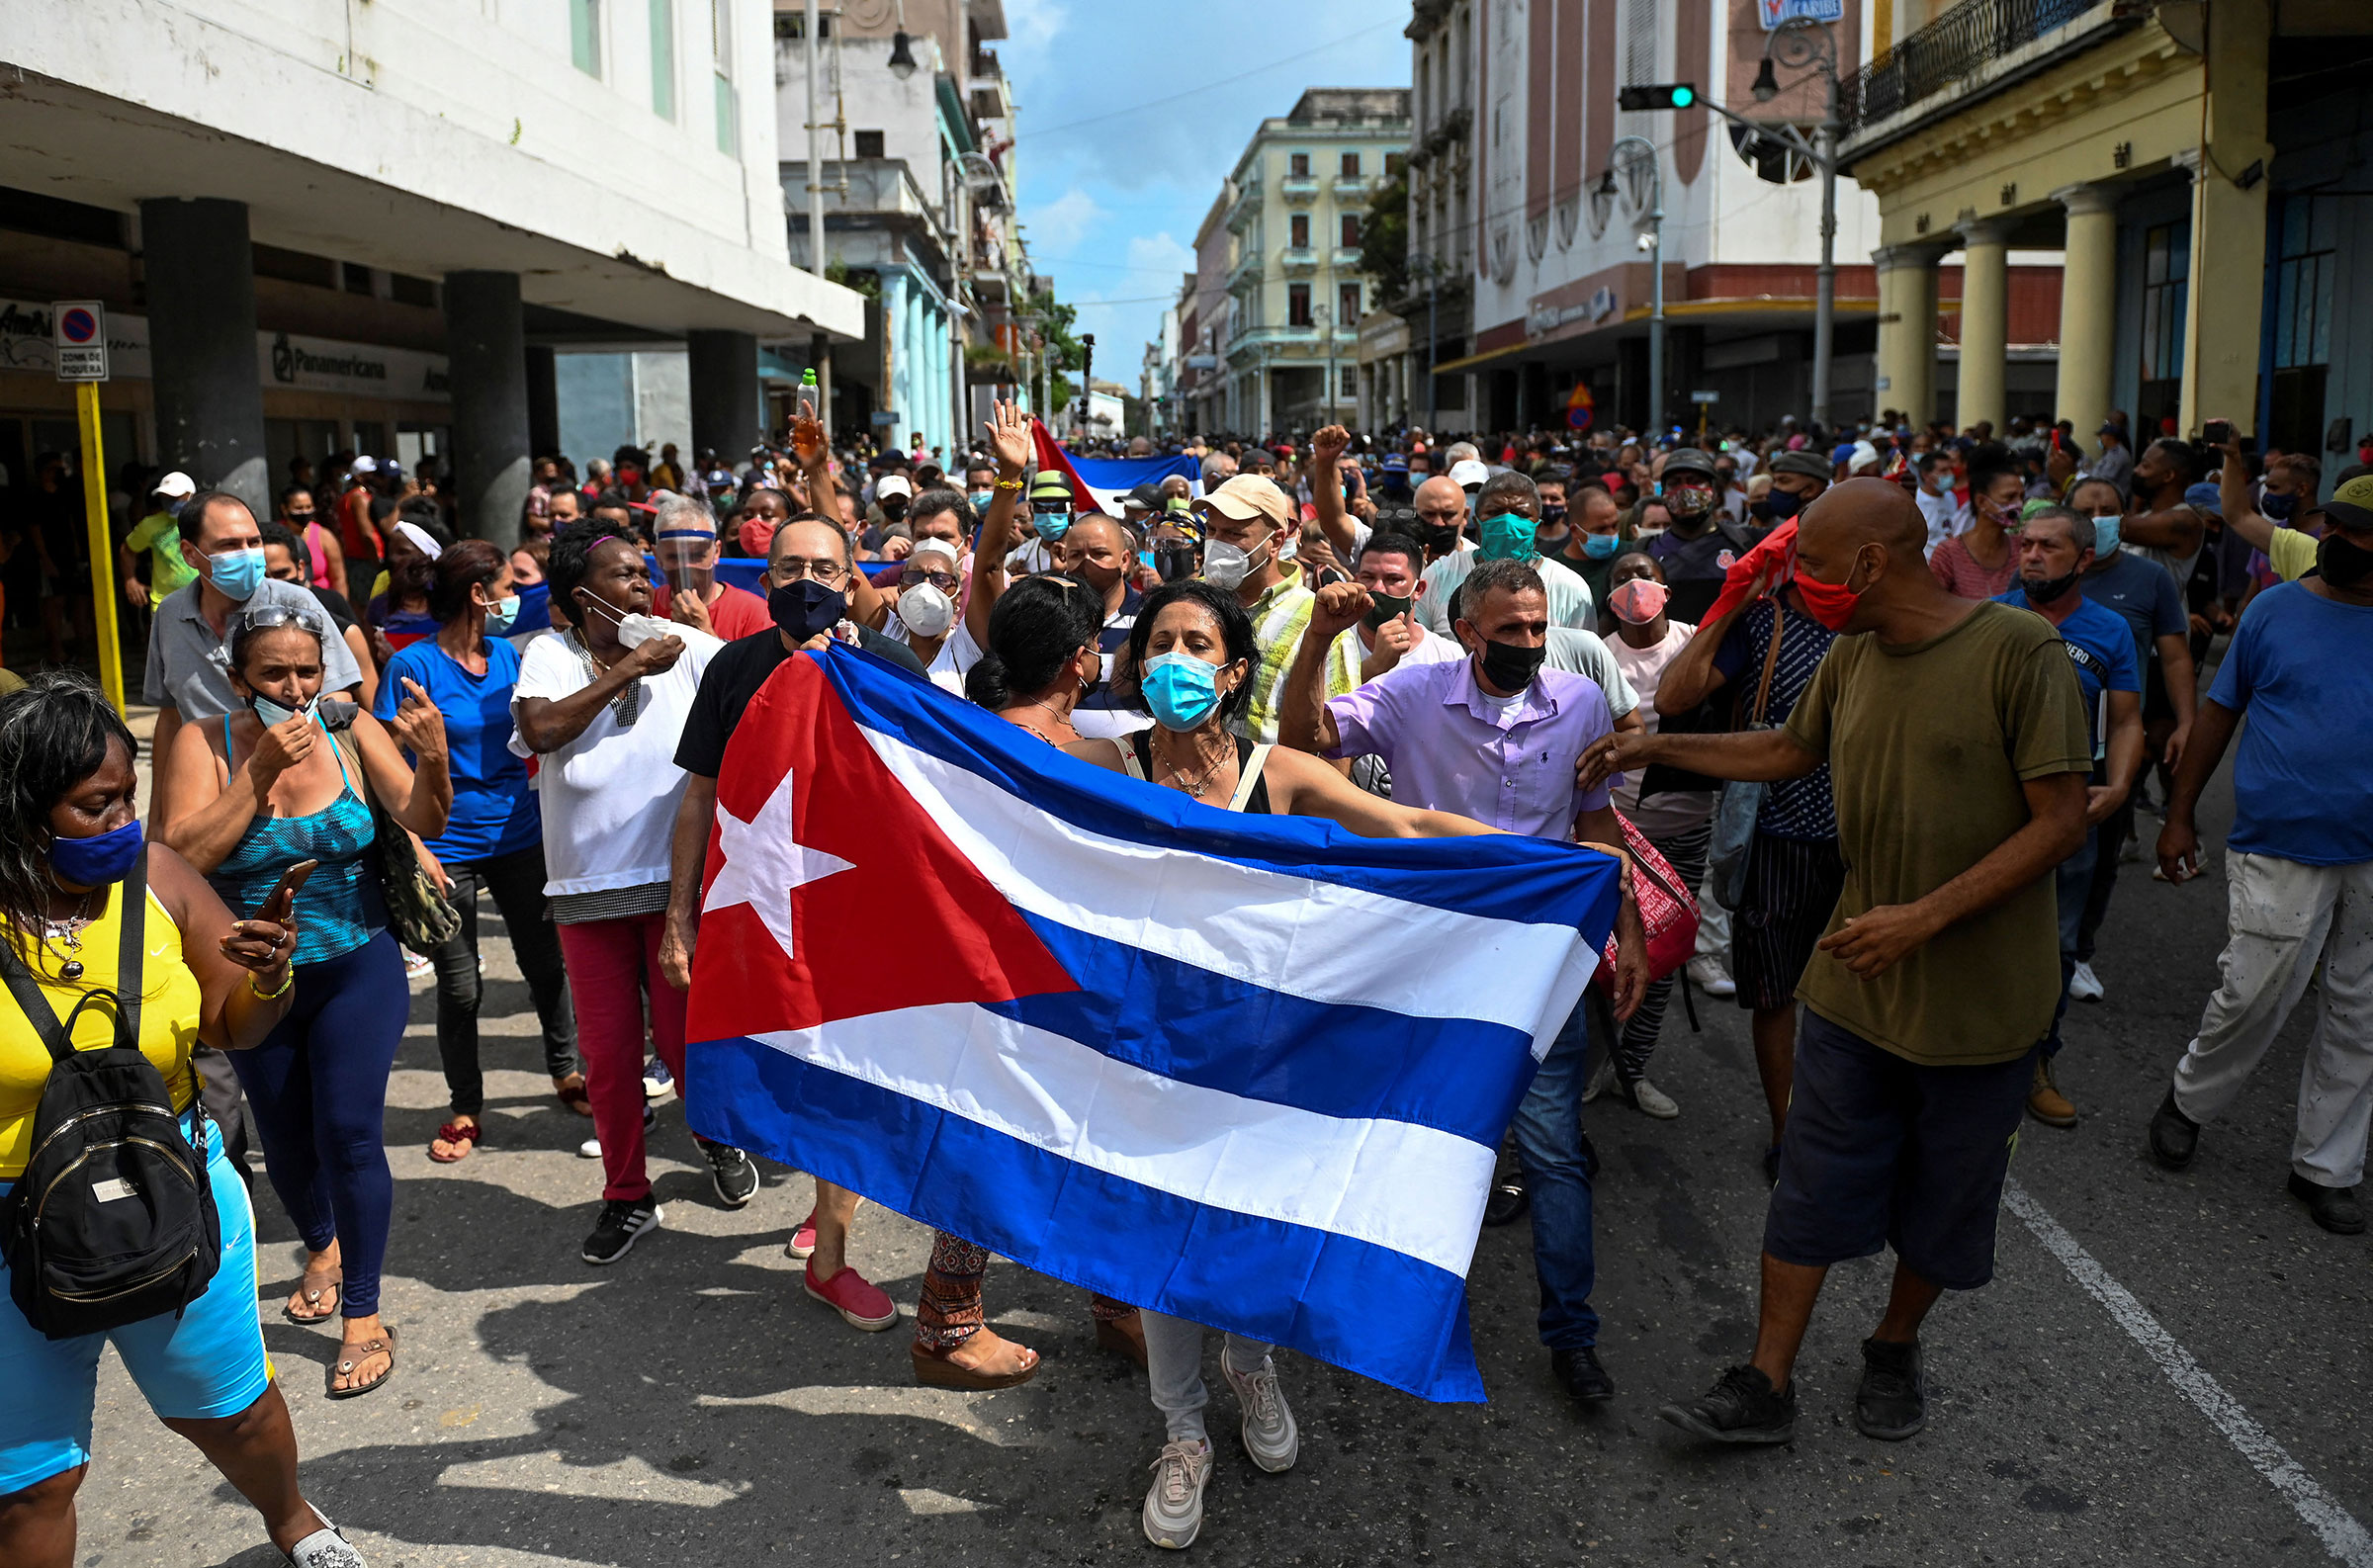 People take part in a demonstration to support the government of the Cuban President Miguel Diaz-Canel in Havana, on July 11, 2021. - Thousands of Cubans took part in rare protests Sunday against the communist government, marching through a town chanting  Down with the dictatorship  and  We want liberty.